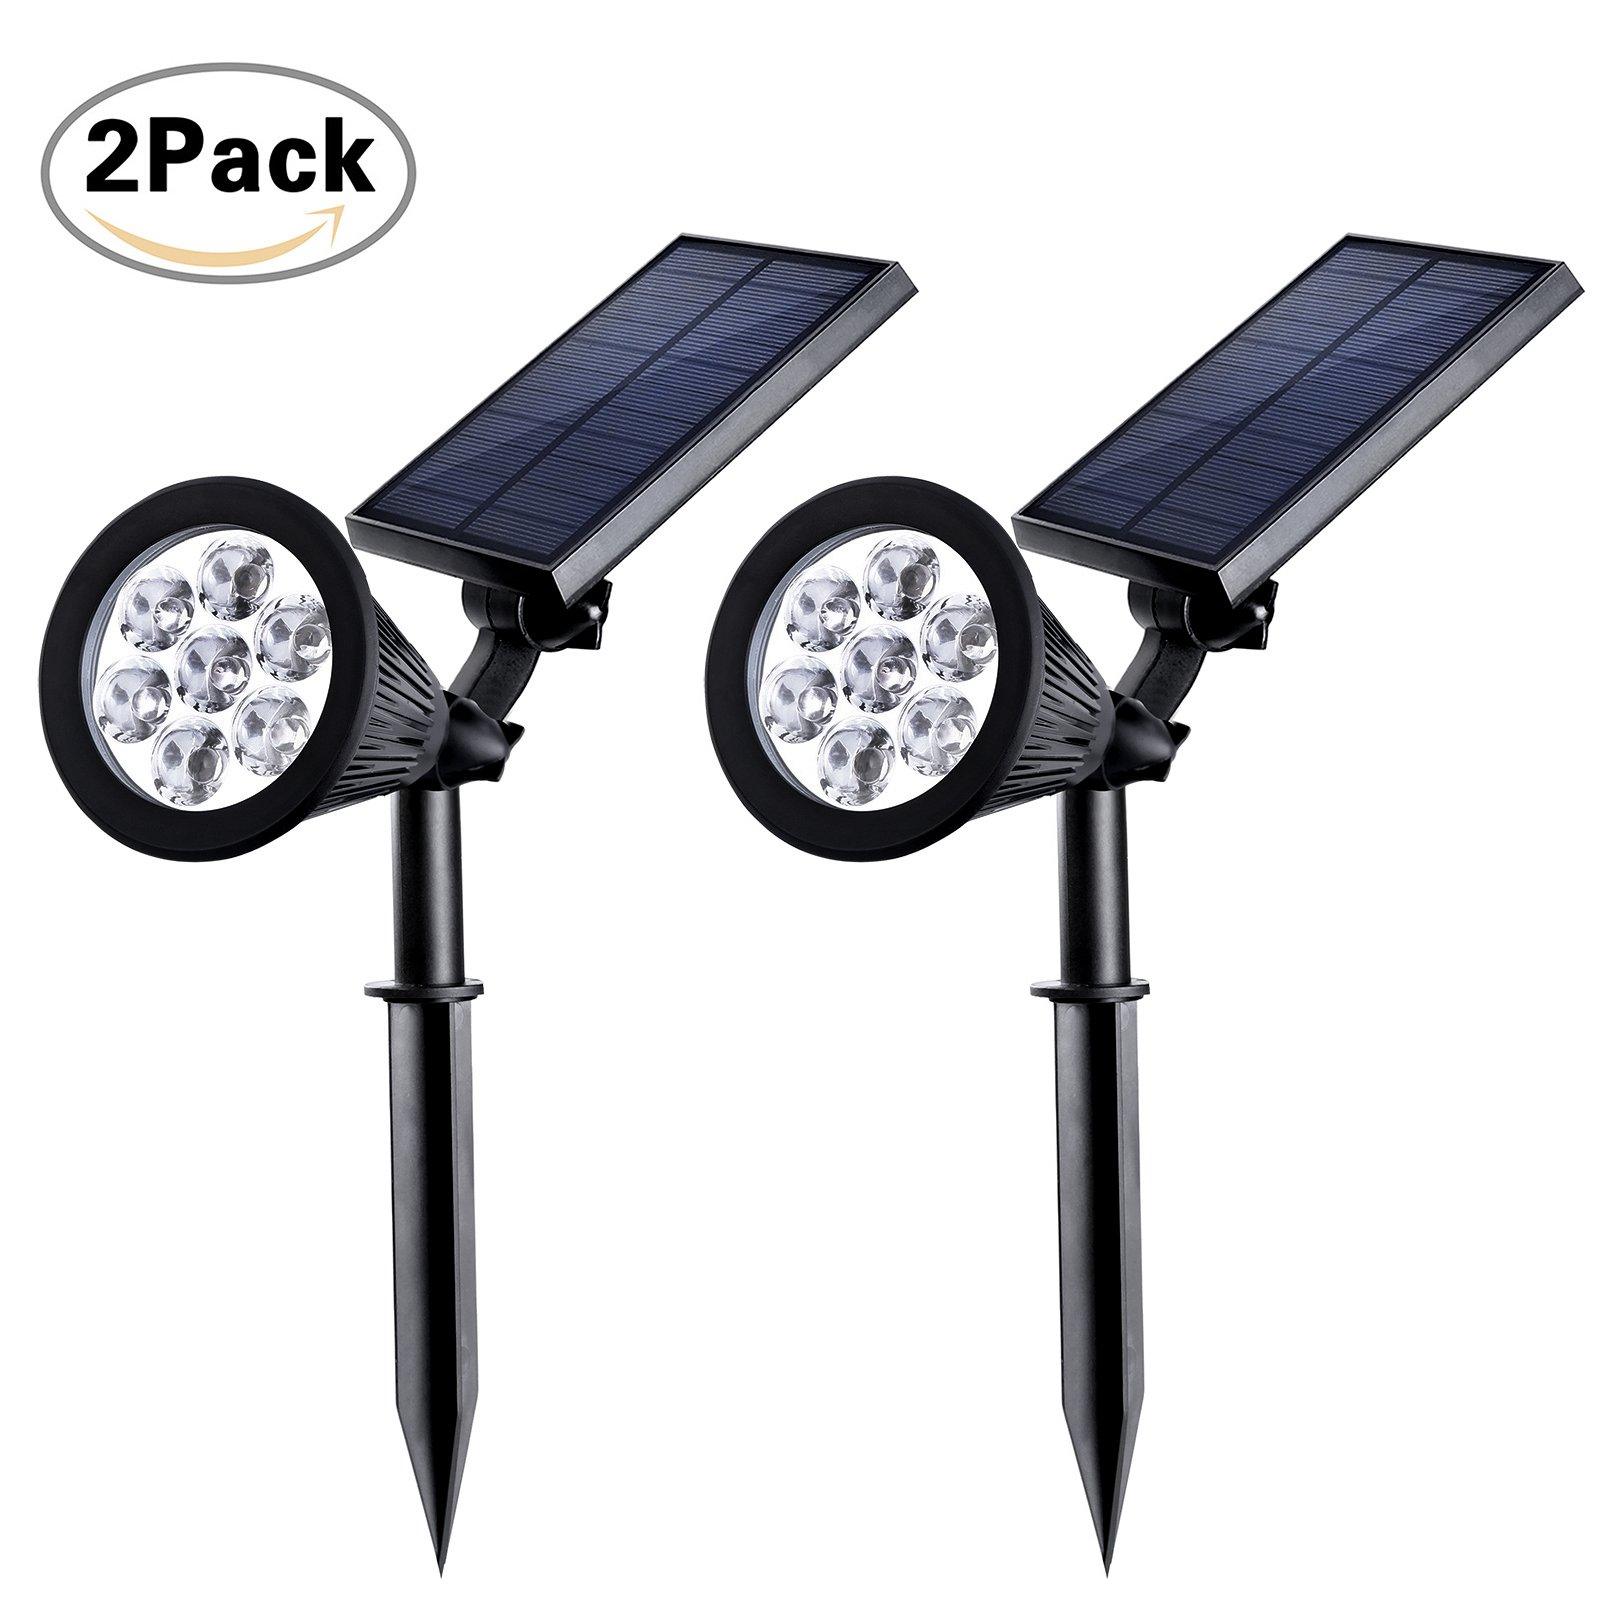 stylish new of angle bright light security solar lighting super outdoor led wireless spot lights com powered bomelconsult wide